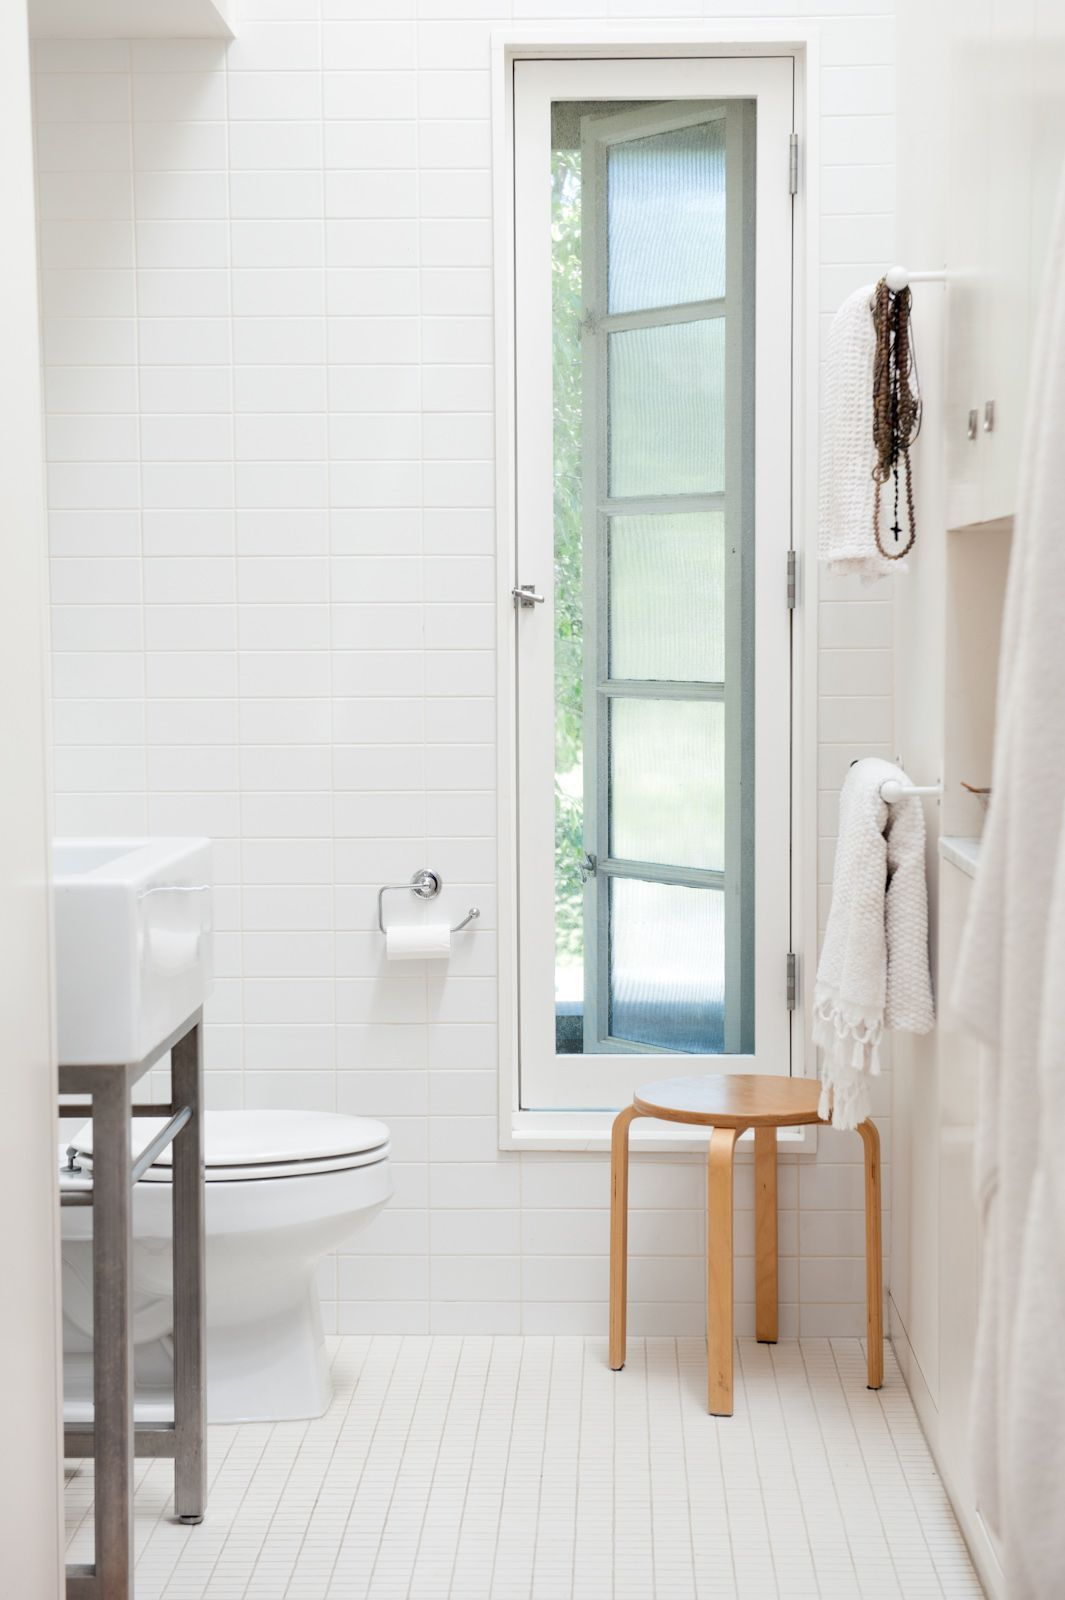 10 Products That Will Turn Your Bathroom